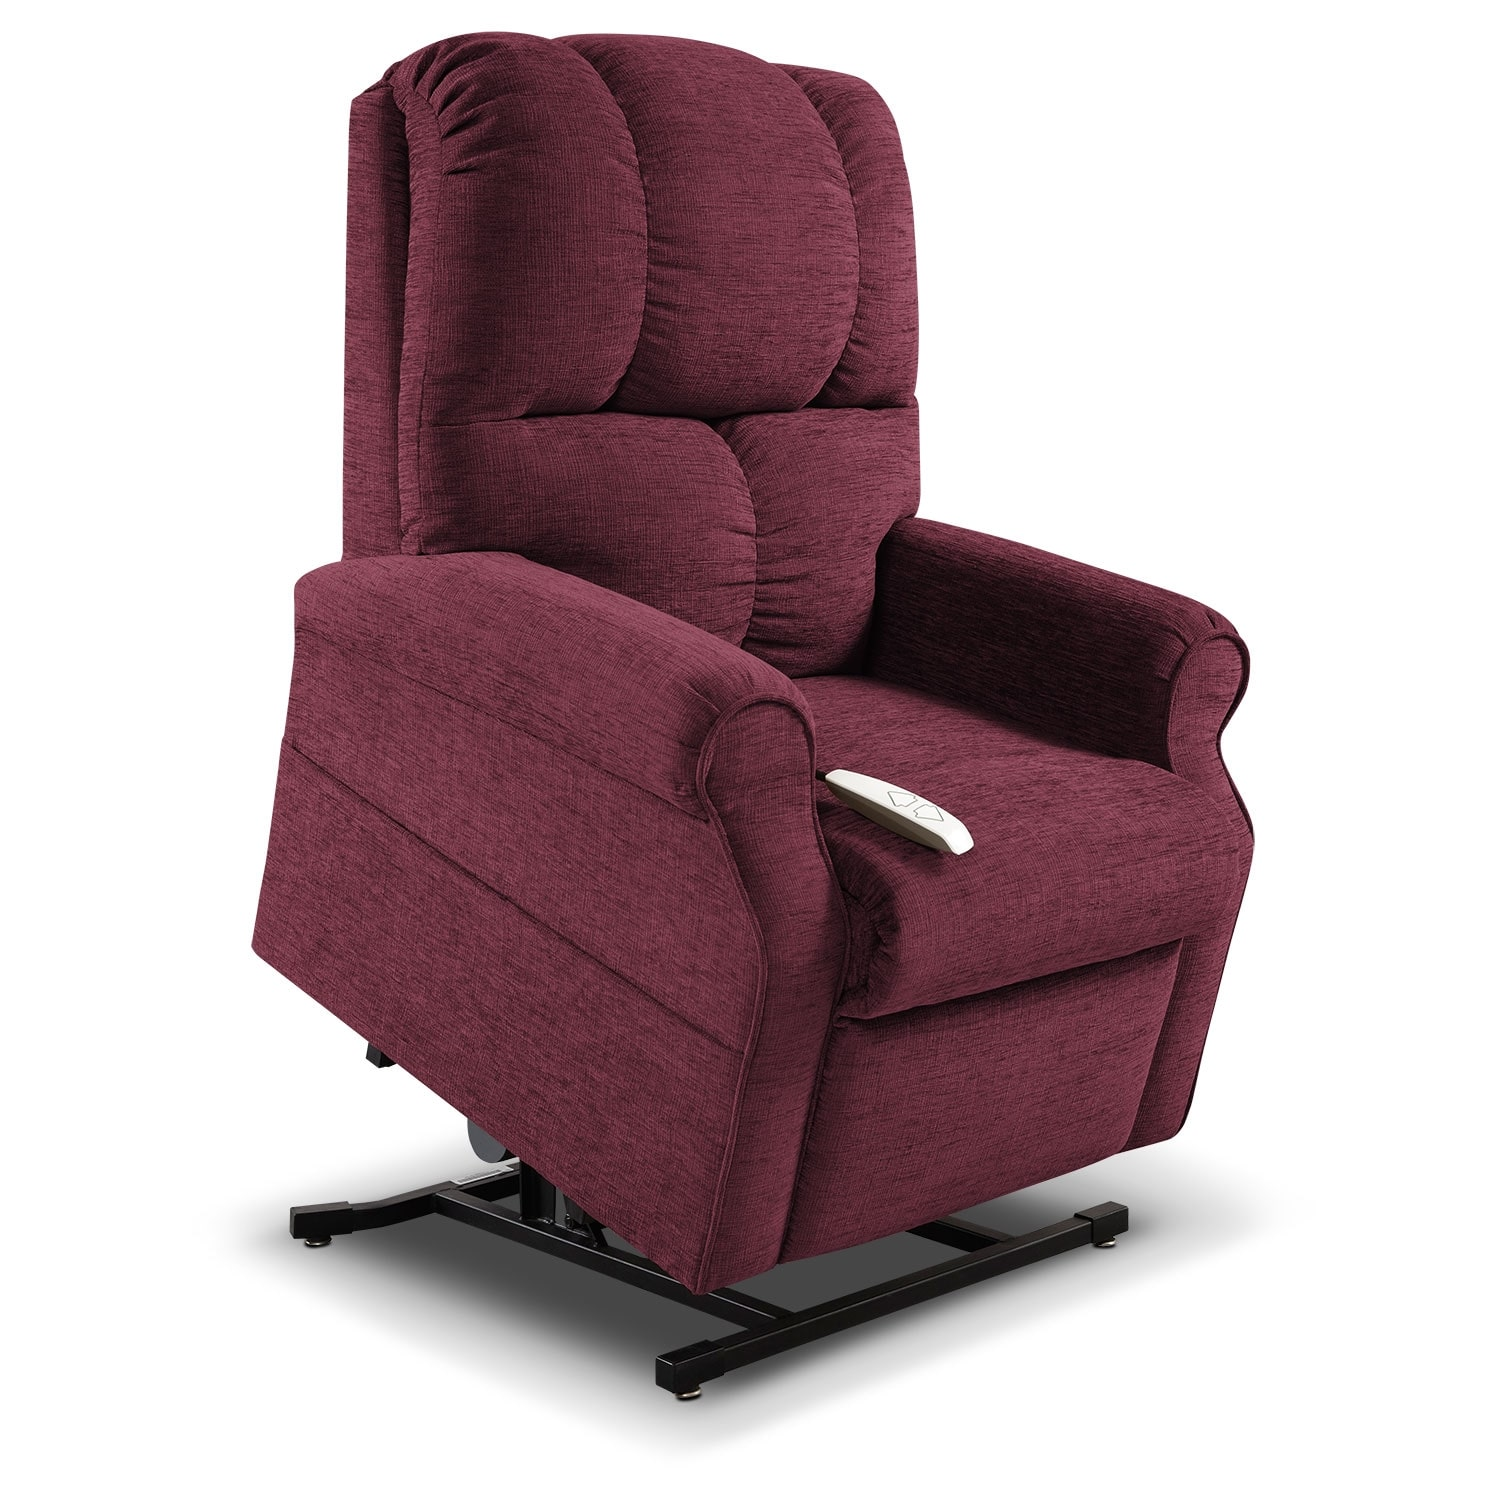 Tillie Lift Chair - Bordeaux